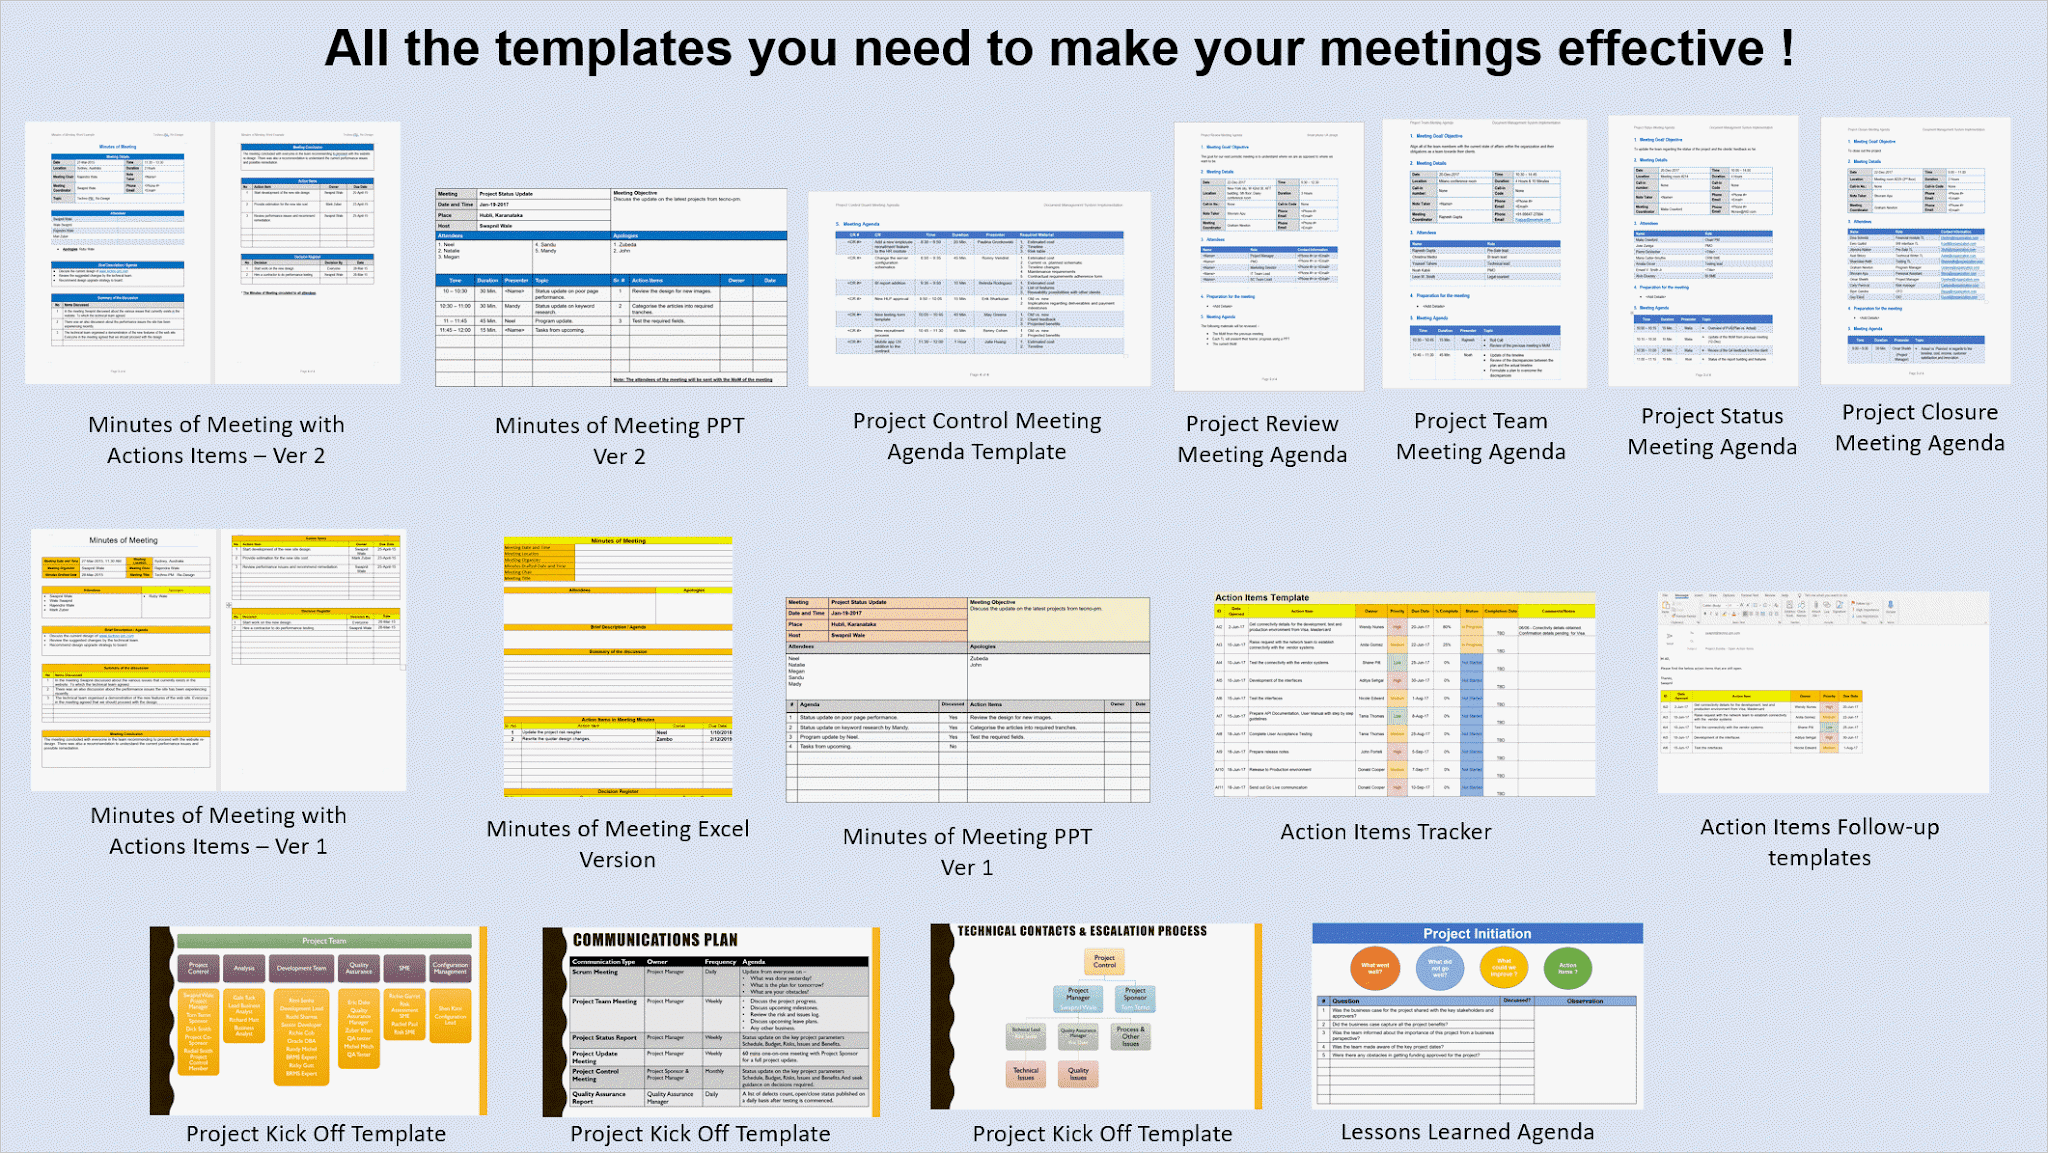 Meeting Minutes Template  Excel and Word Free Download   Project ...